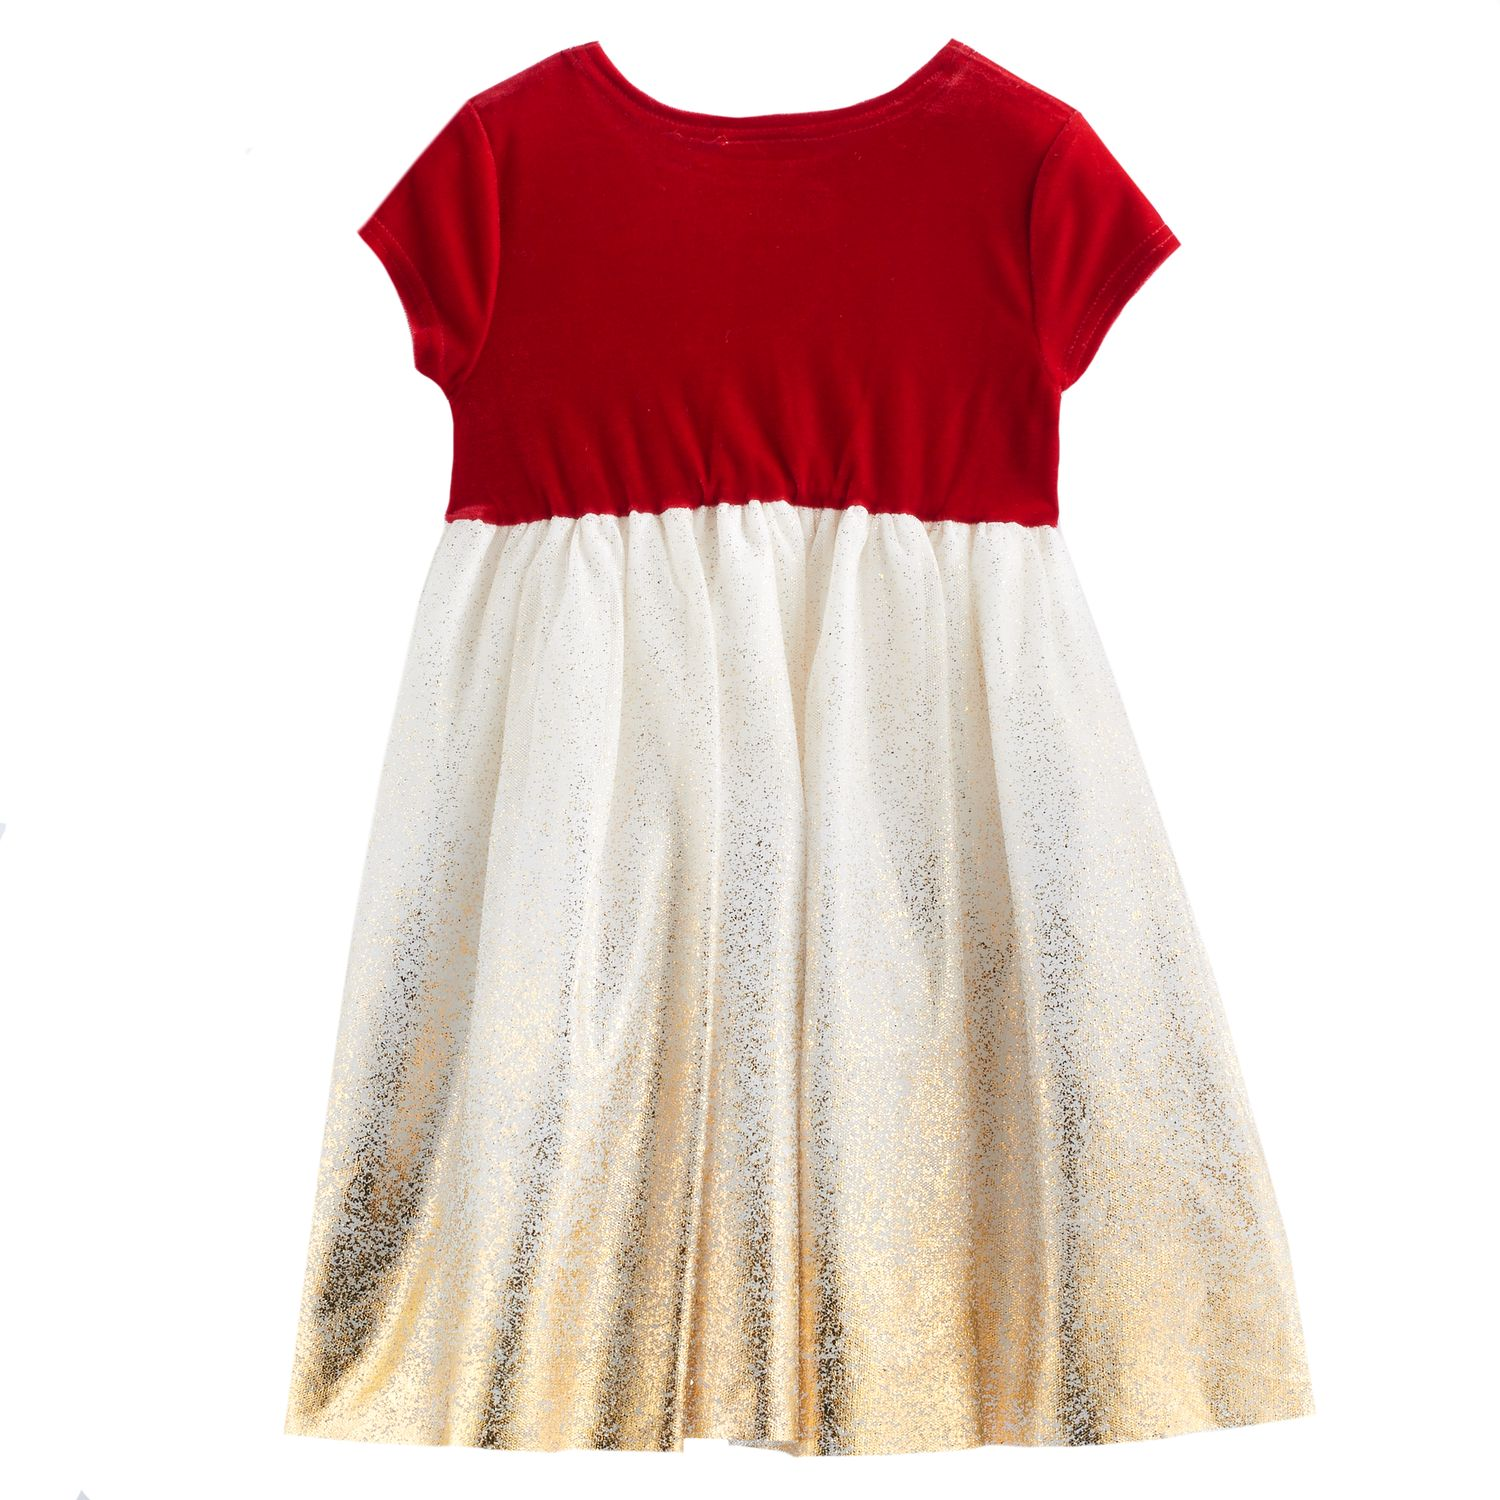 Girls Christmas Kids Toddlers Dresses Clothing